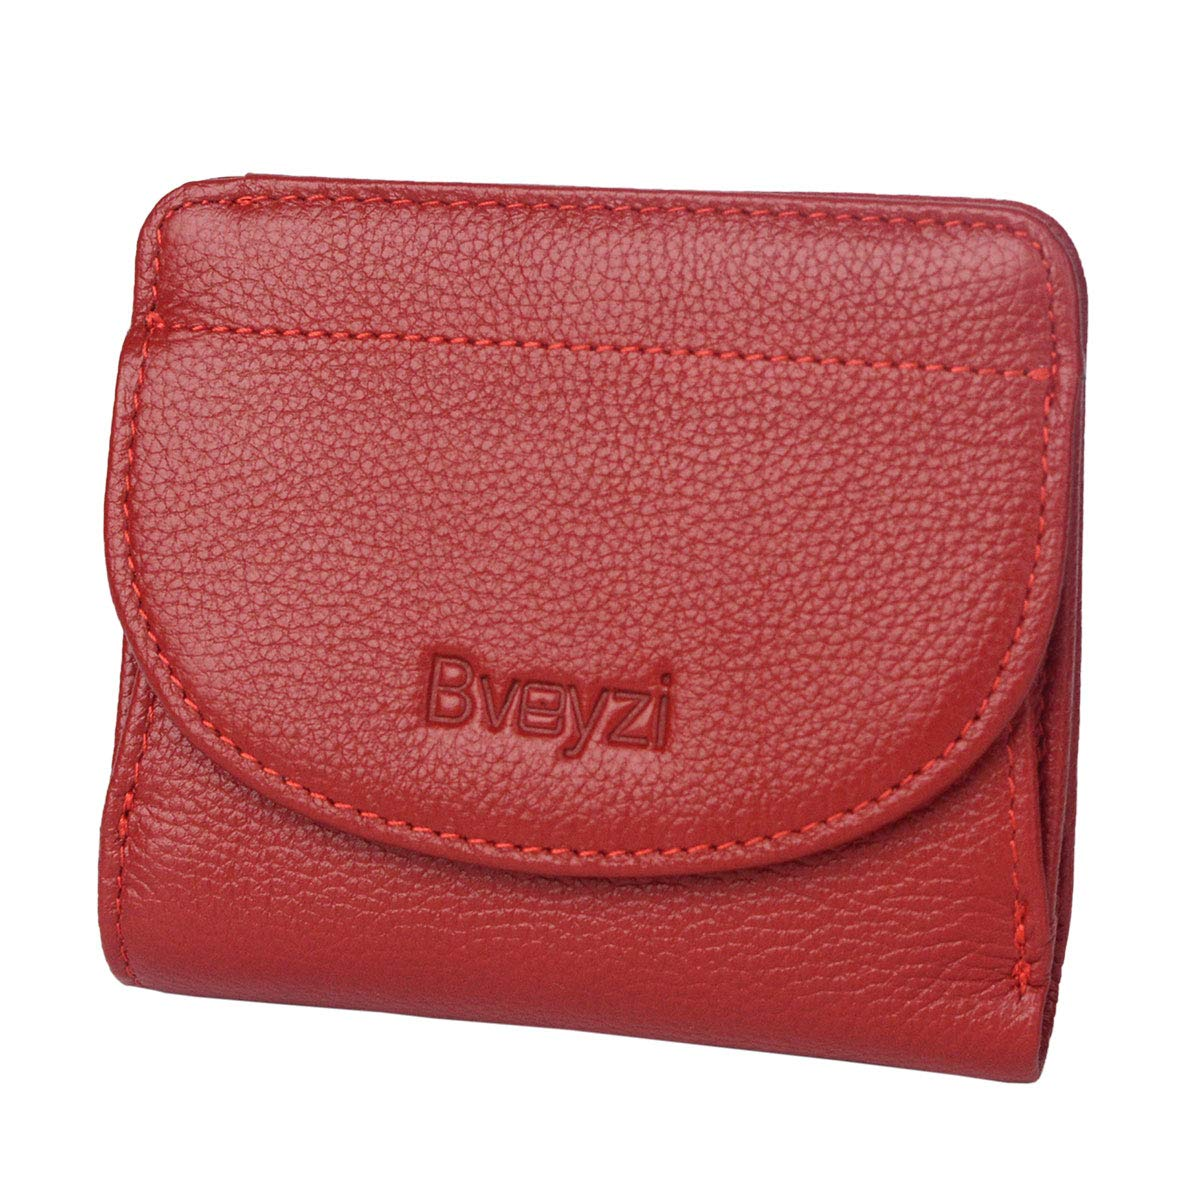 Small Leather Wallet for Women, RFID Blocking Mini Compact Bifold Purse With Coin Pocket (Wine Red)